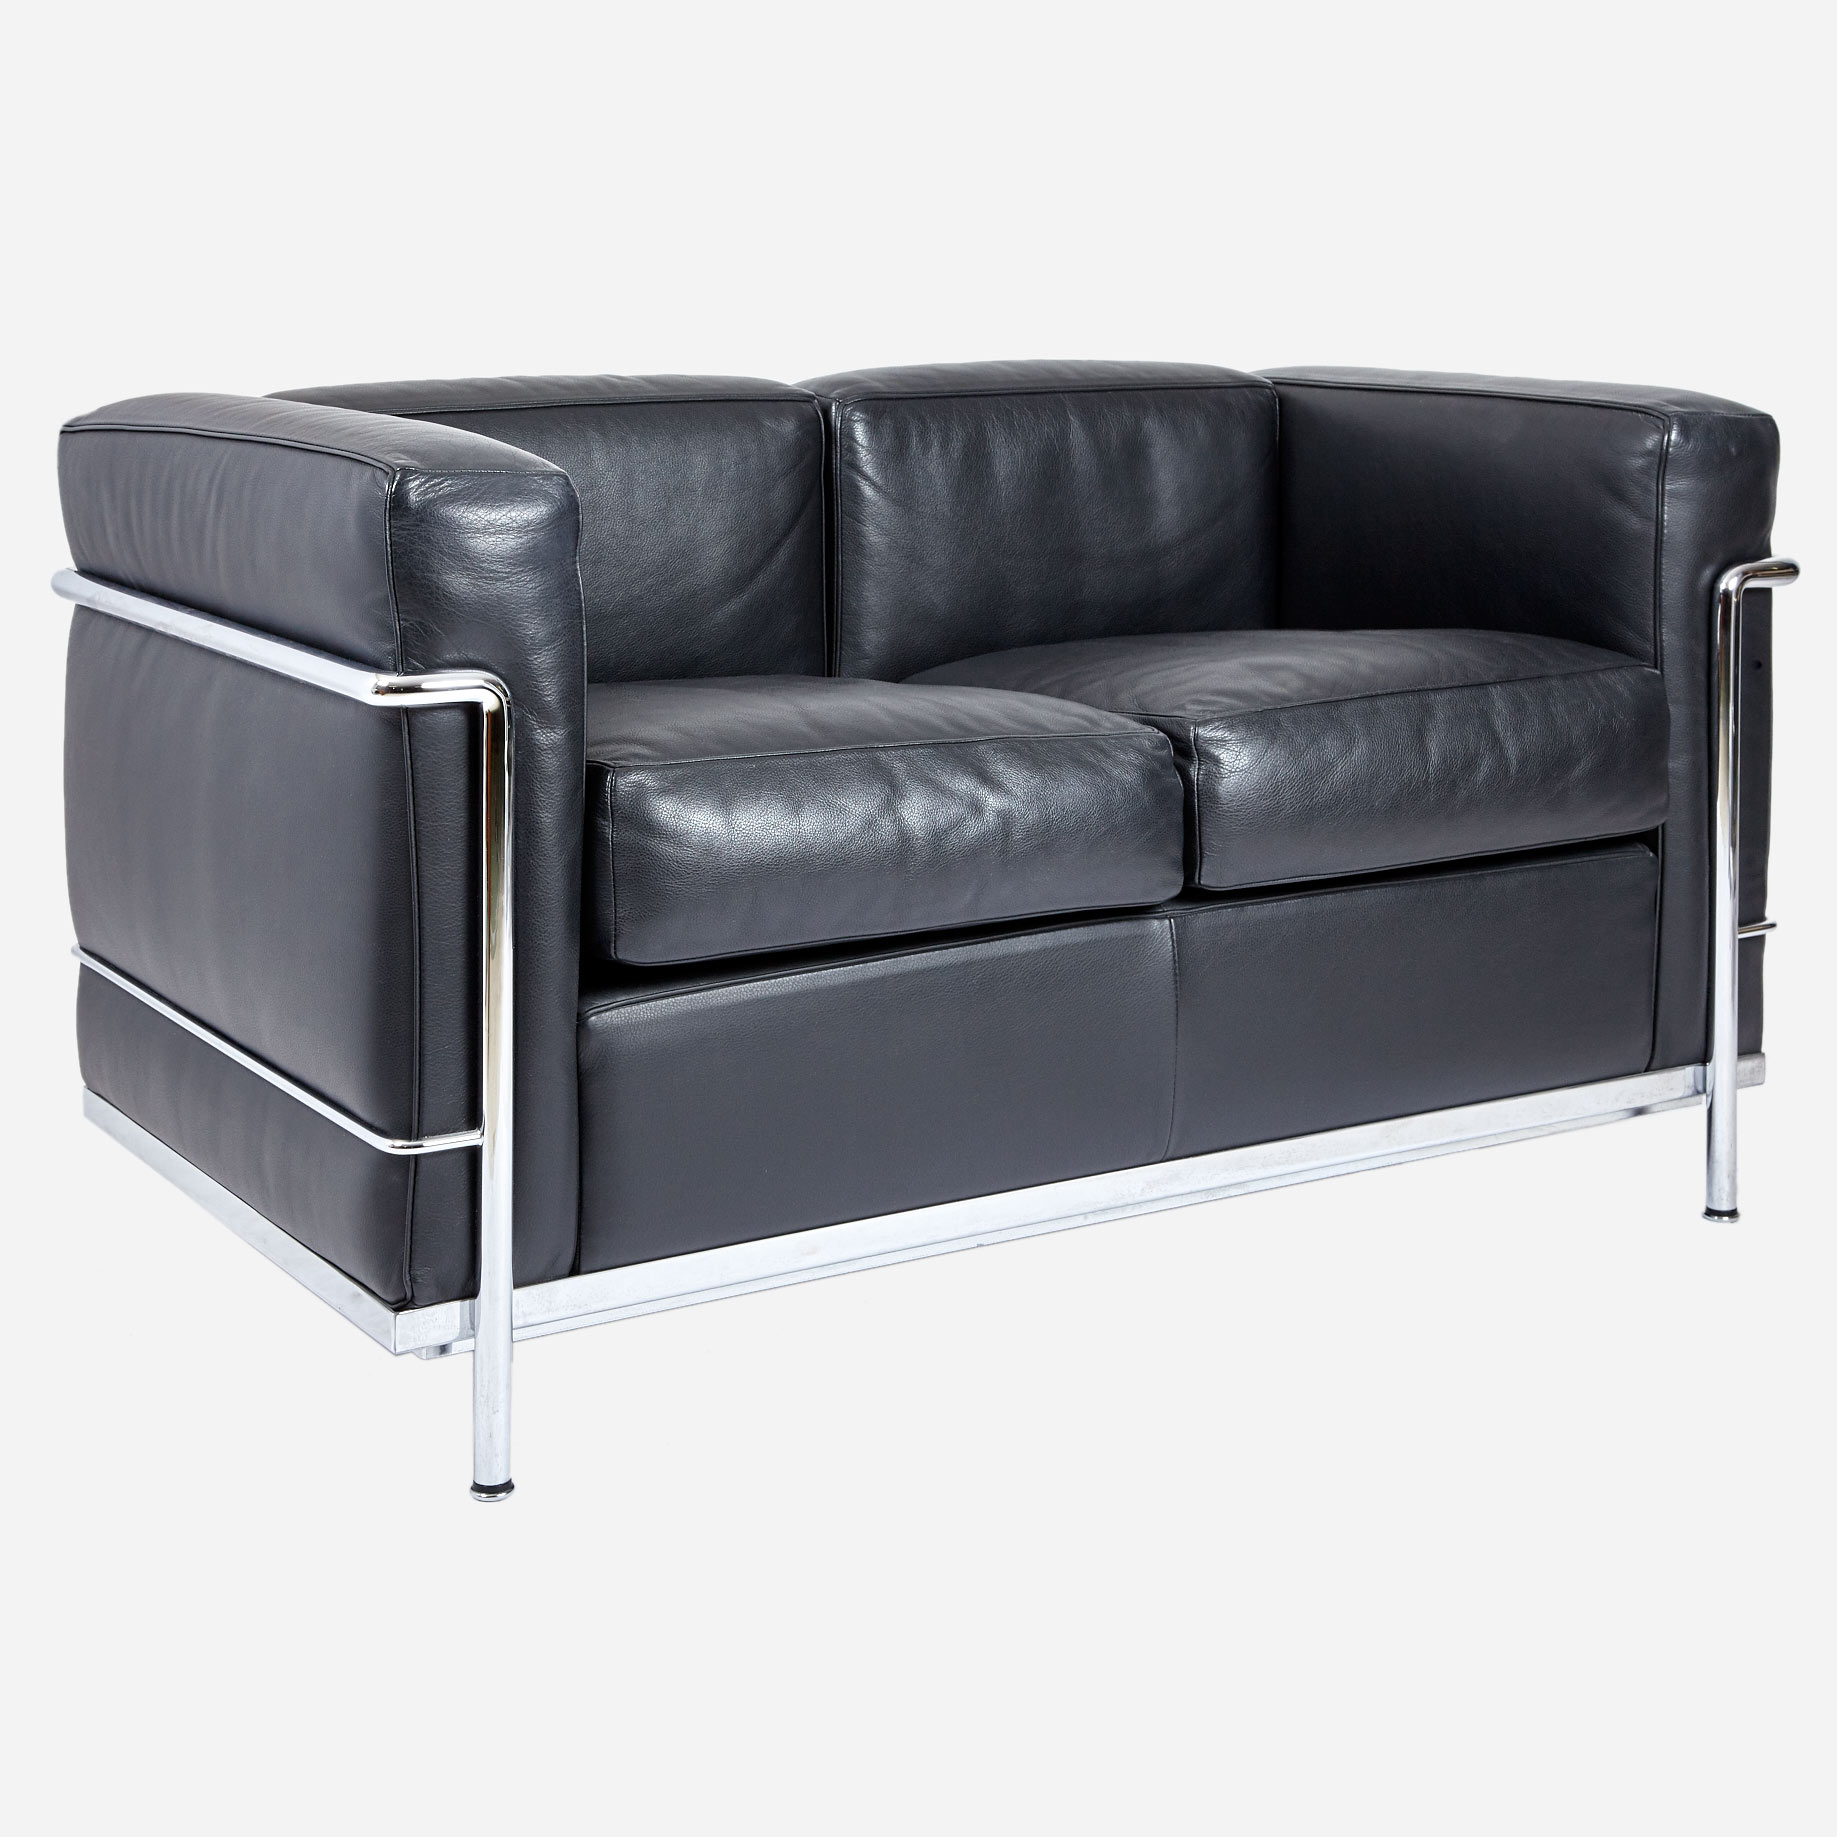 le corbusier 2er lc2 ledersofa neuwertig m bel z rich vintagem bel. Black Bedroom Furniture Sets. Home Design Ideas